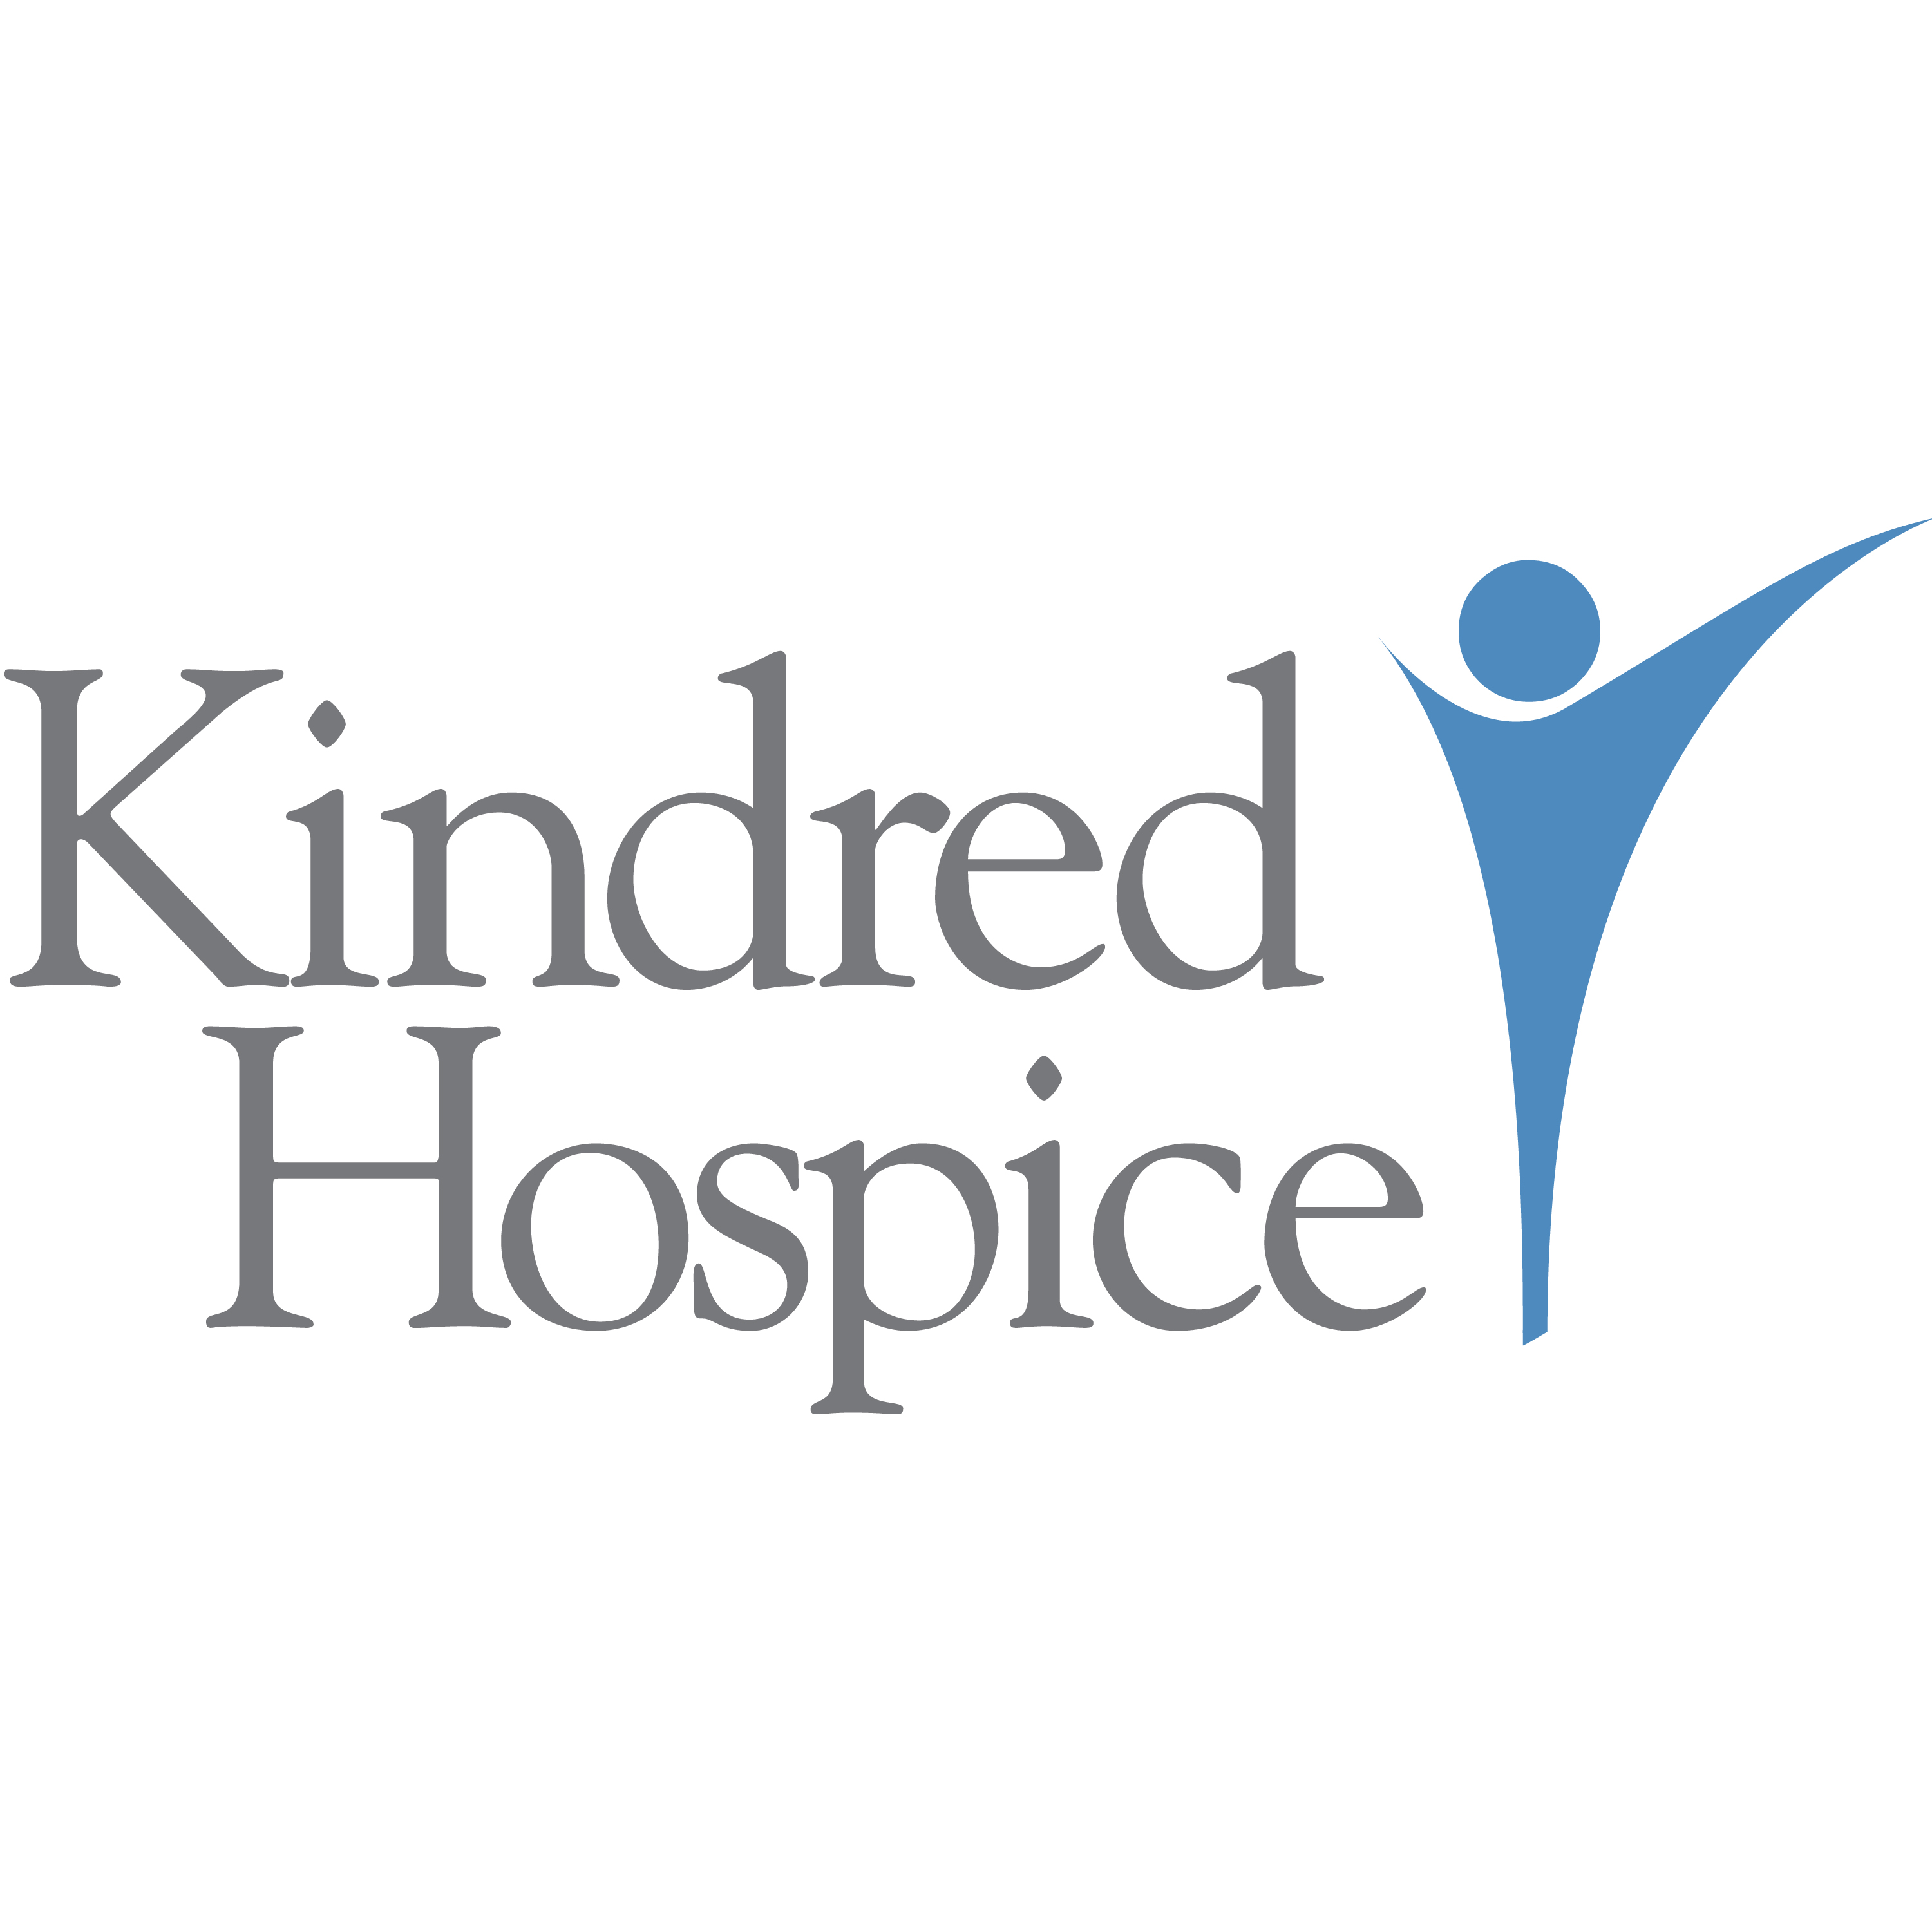 Kindred Hospice - Victoria, TX